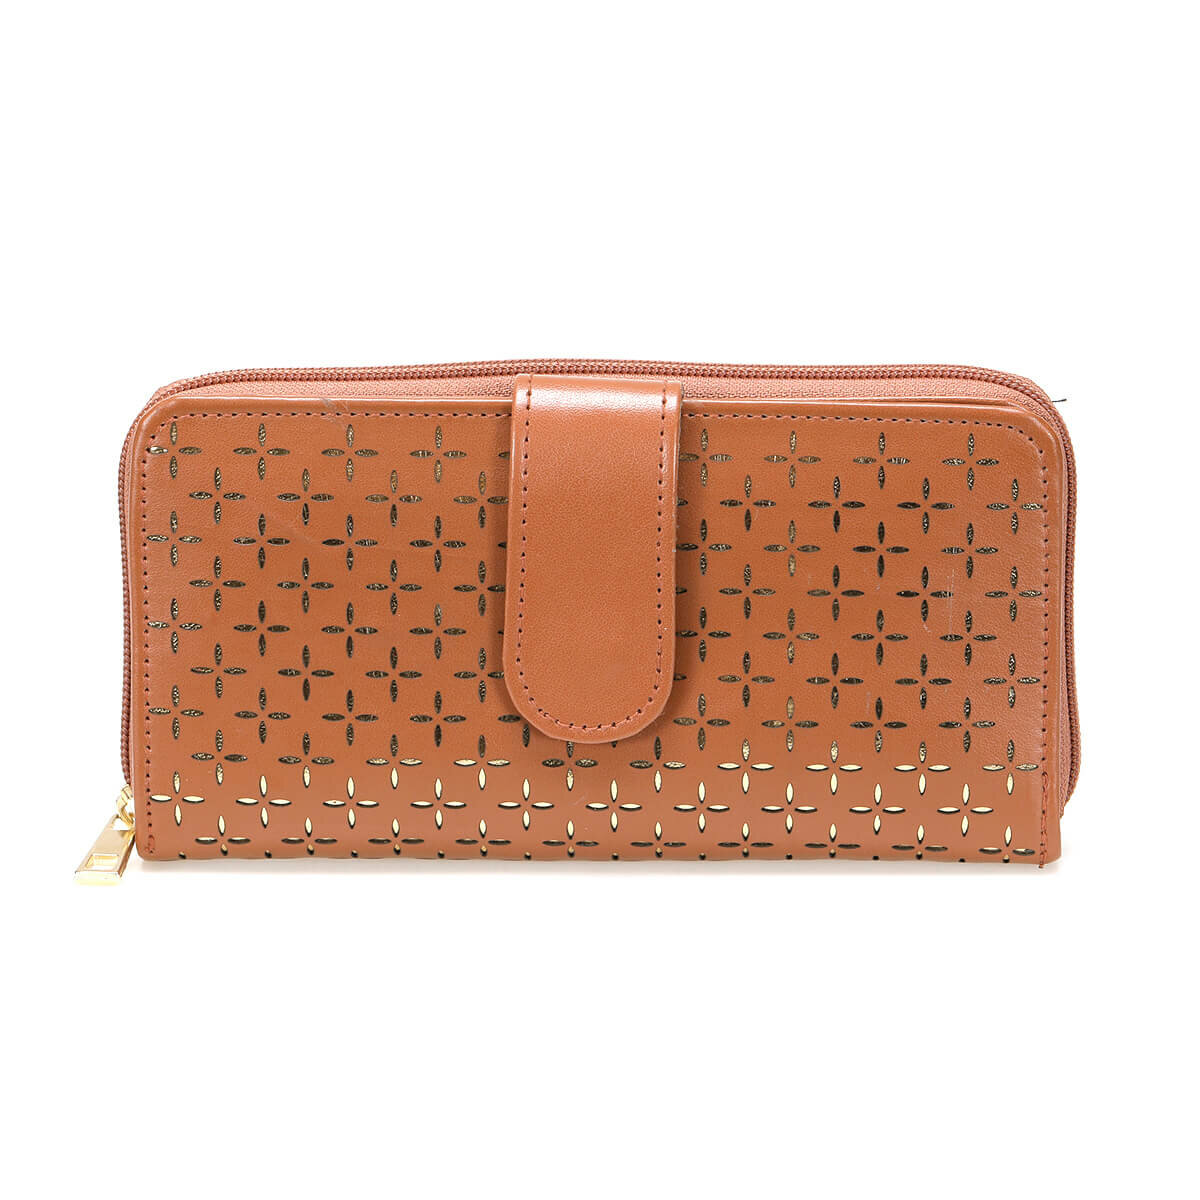 FLO 91.968.009.D Tan Women 'S Wallet Polaris